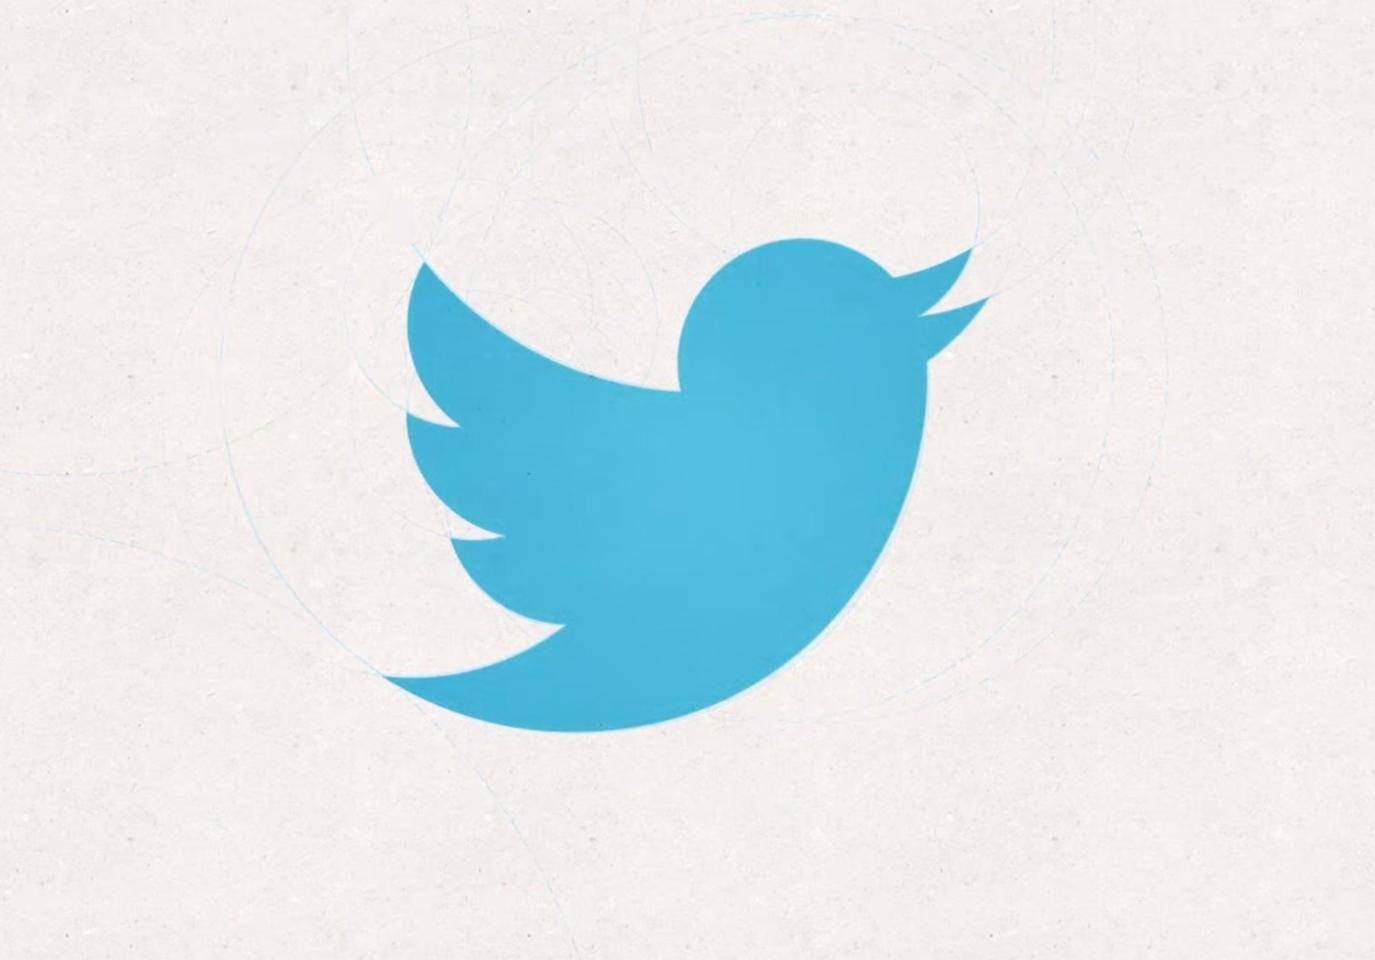 We give you some tips and tricks to help you navigate the Twitterverse